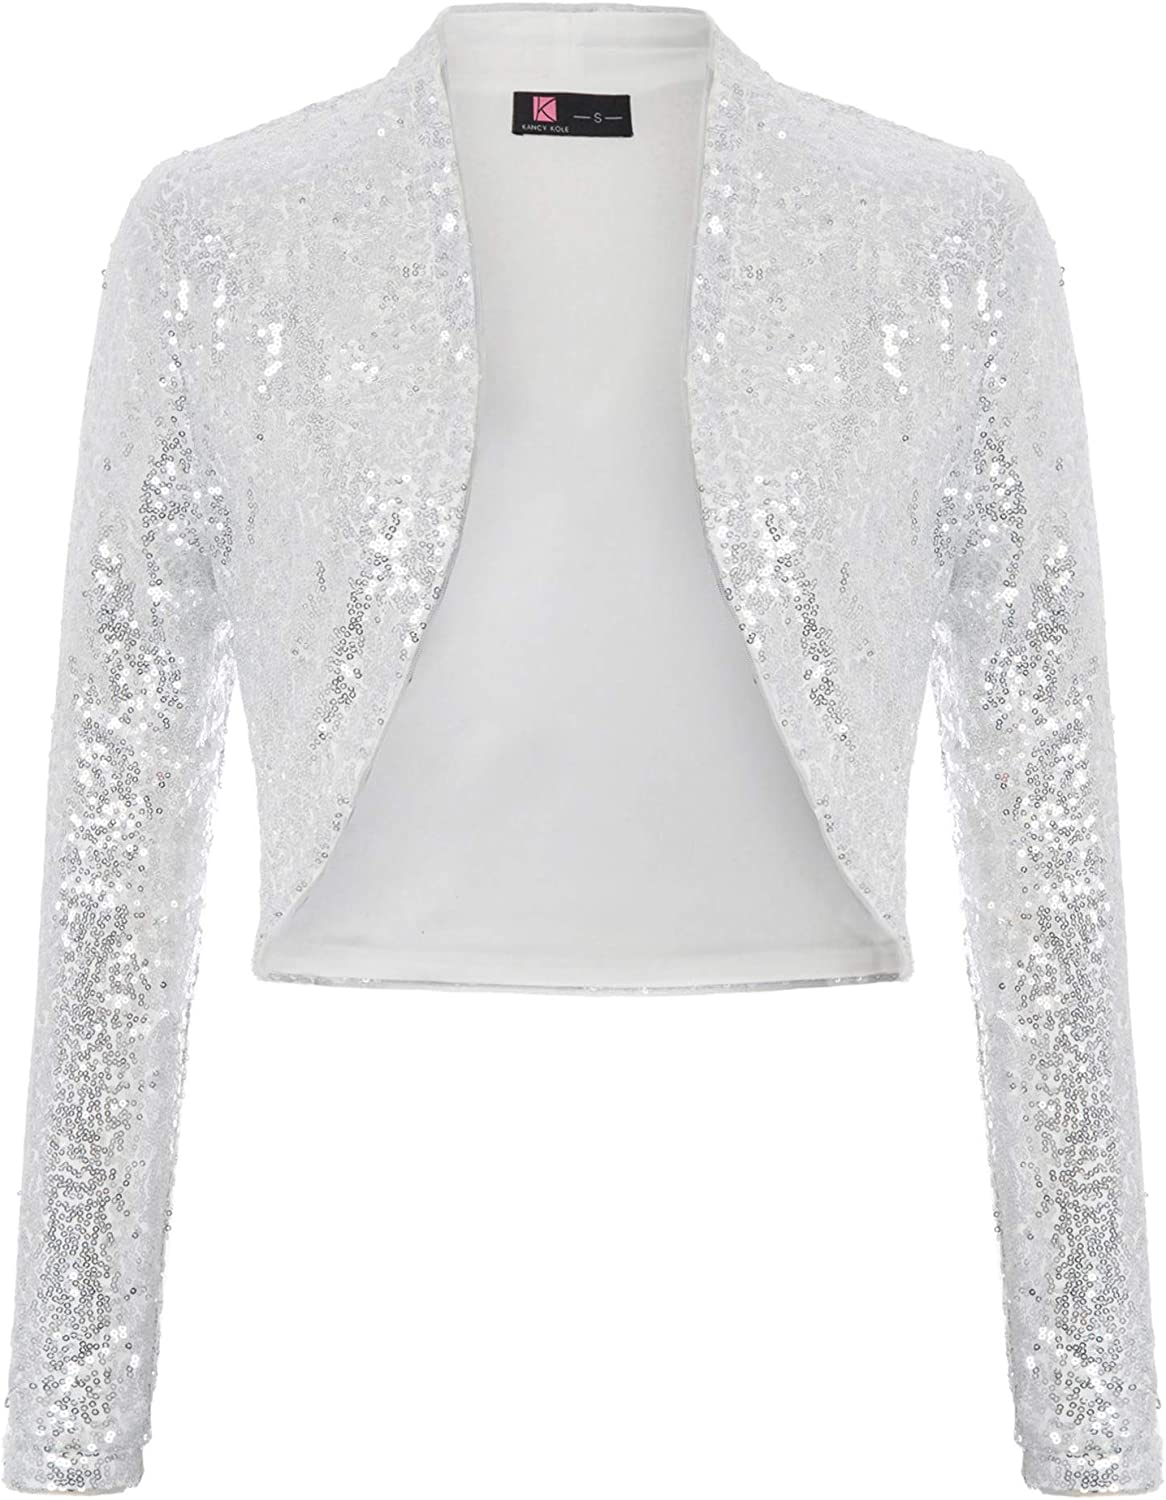 KANCY Super sale period limited KOLE Women's Sequin Shrug Long B Cropped Sleeve Front Open Large special price